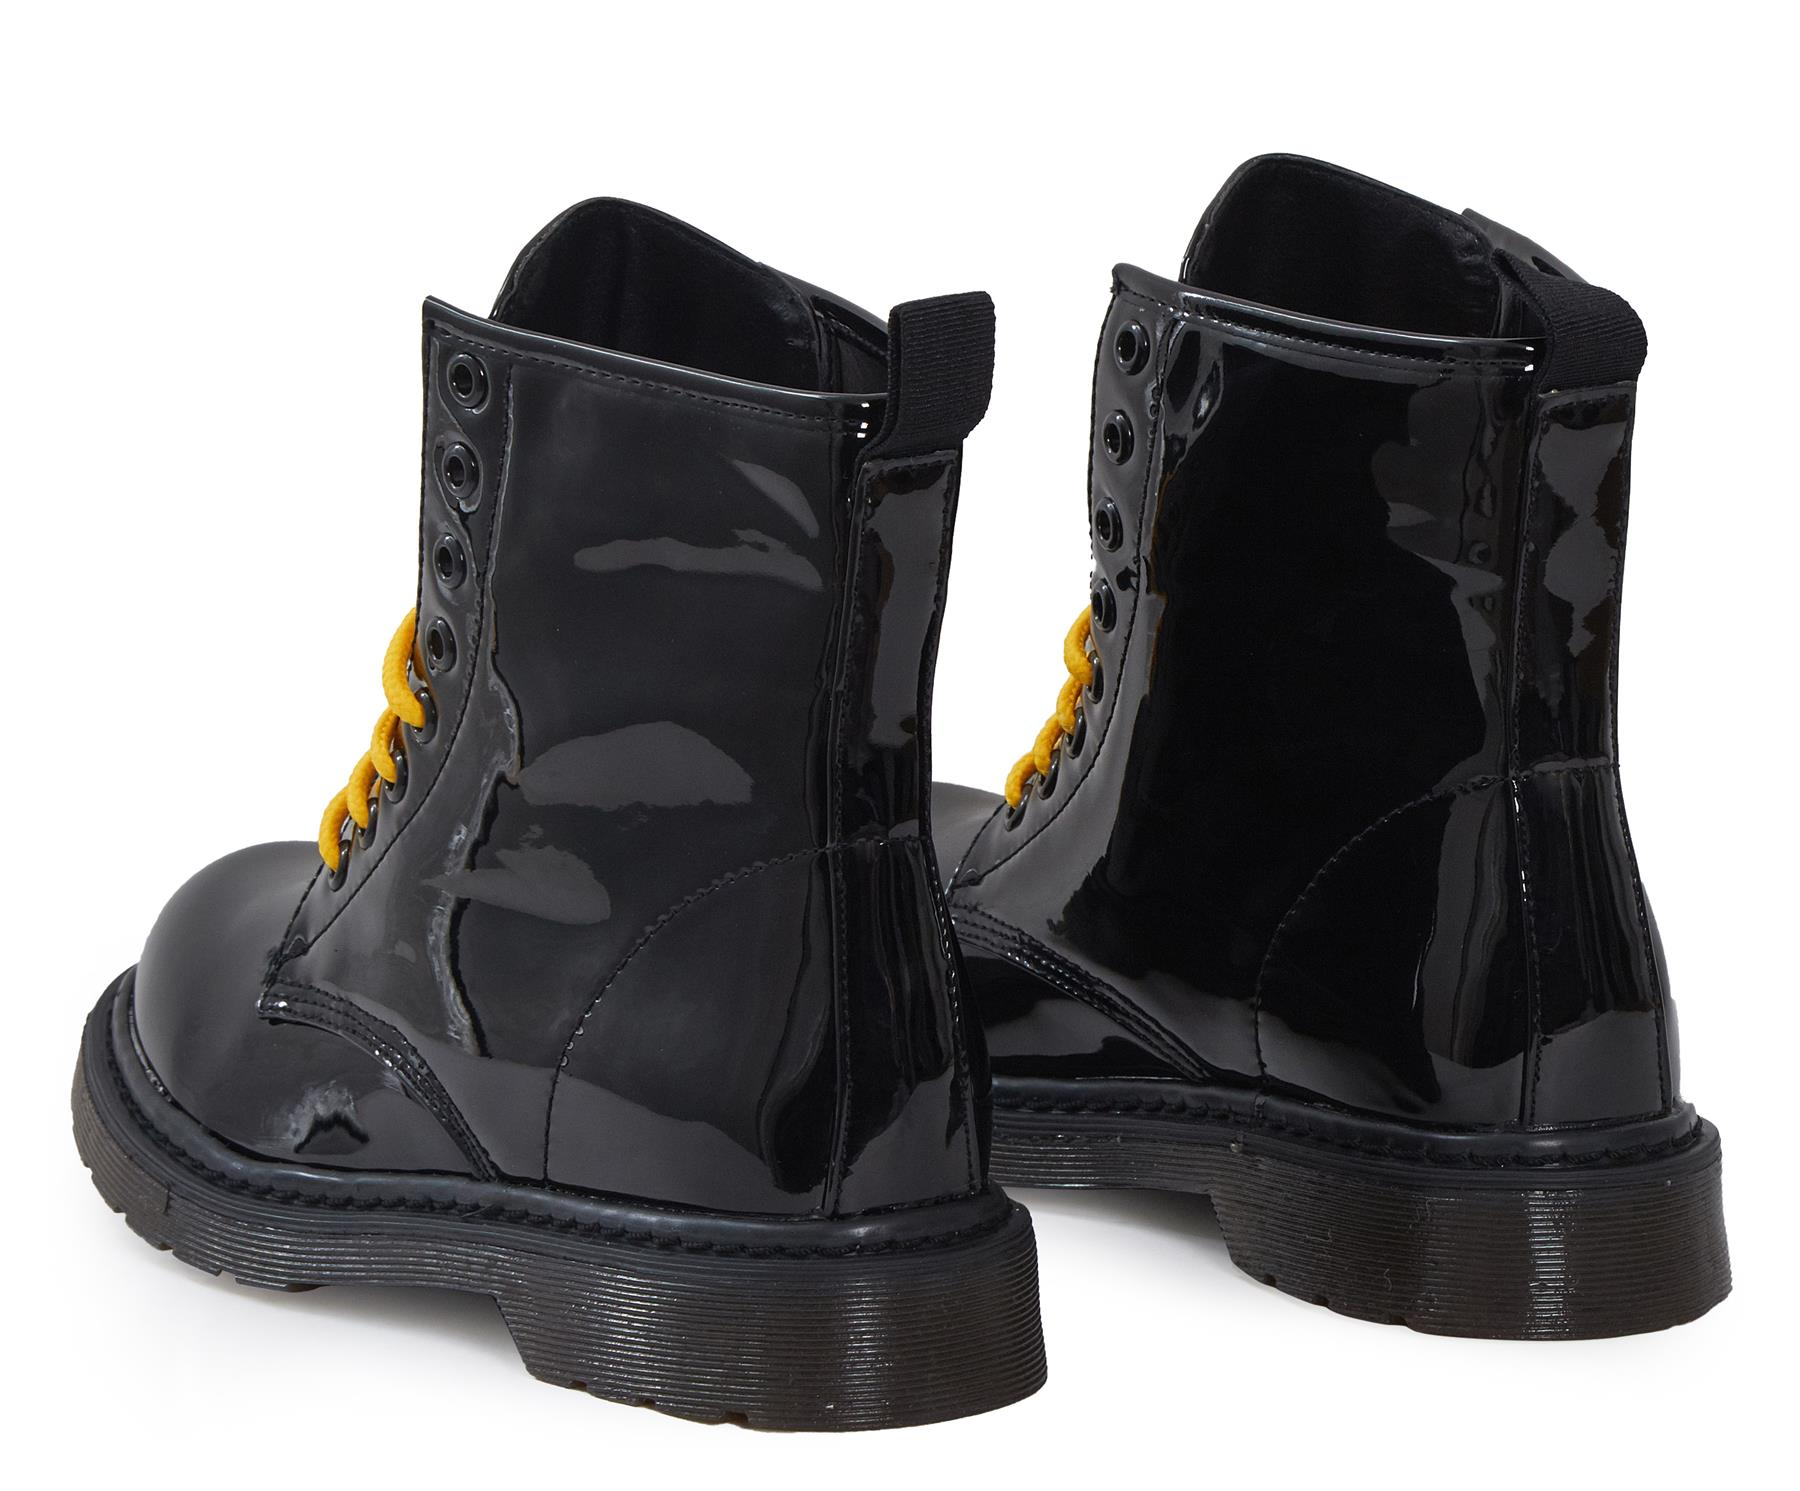 Shelikes-Womens-Ankle-Boots-Vintage-Combat-Army-Flat-Lace-Up-Work-Military-Biker thumbnail 8